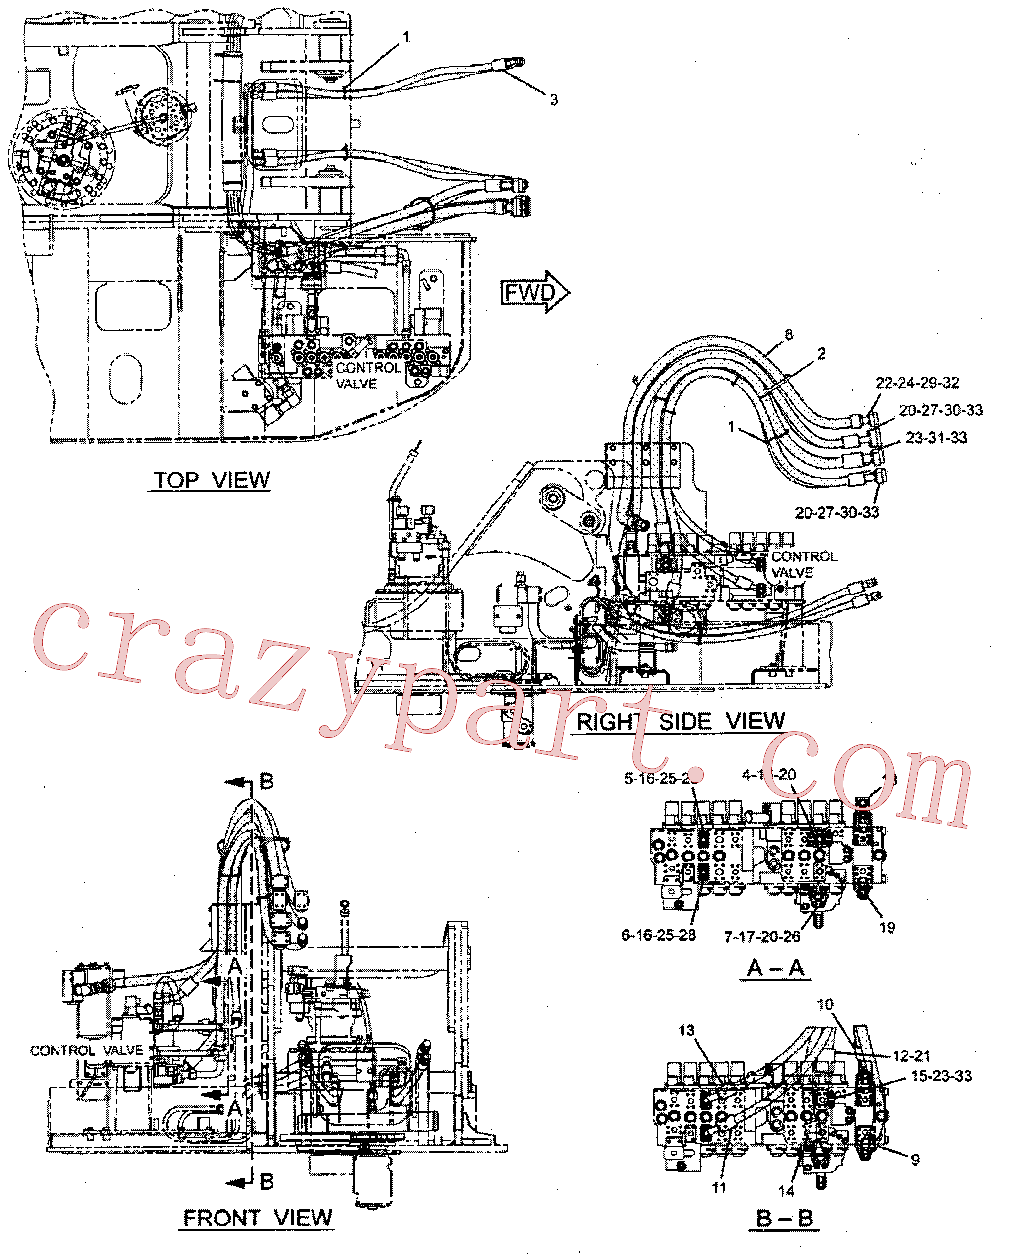 CAT 171-3306 for 328D LCR Excavator(EXC) hydraulic system 277-0867 Assembly